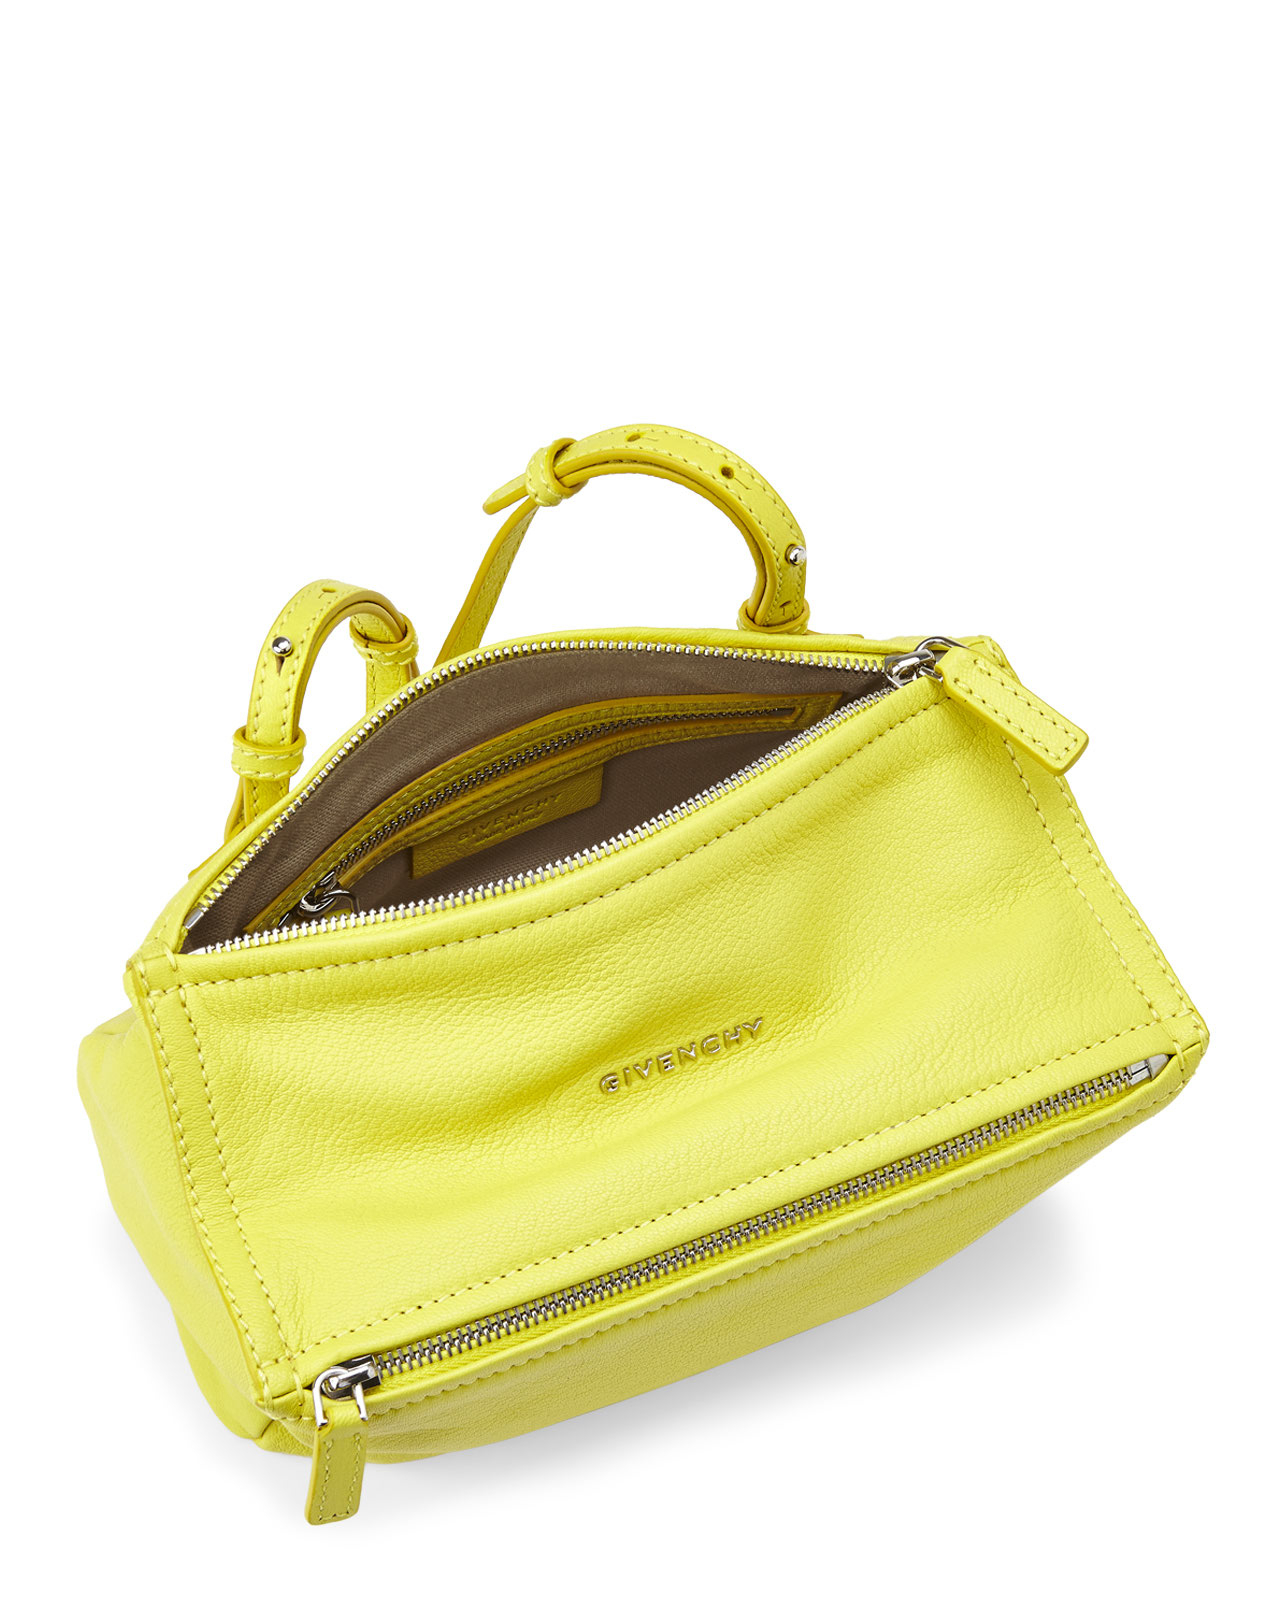 Lyst - Givenchy Yellow Pandora Mini Shoulder Bag in Yellow 6a9bcd7a0866d